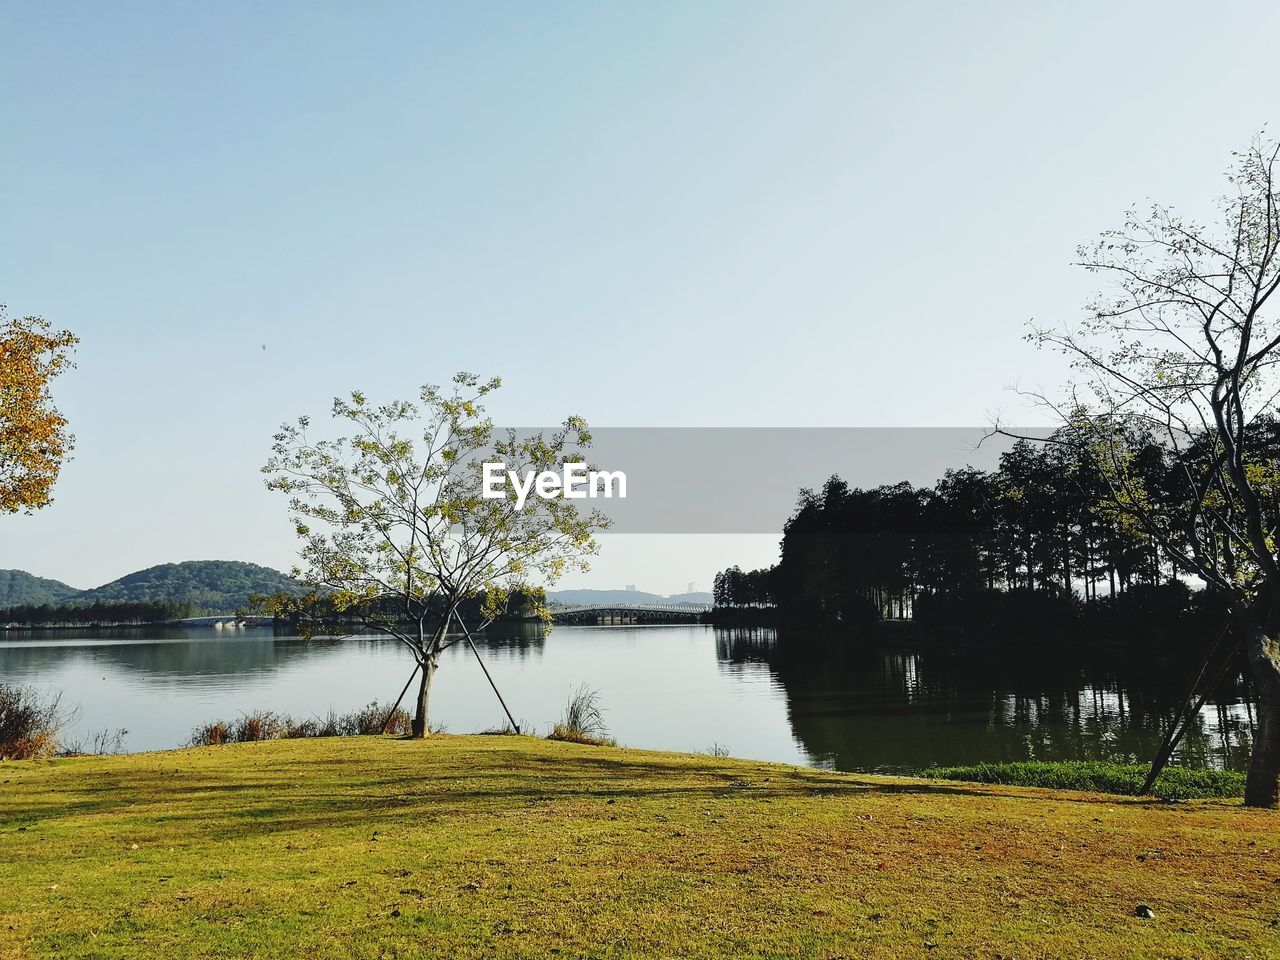 water, lake, plant, tree, tranquility, sky, tranquil scene, beauty in nature, scenics - nature, reflection, grass, nature, clear sky, green color, no people, day, growth, copy space, non-urban scene, outdoors